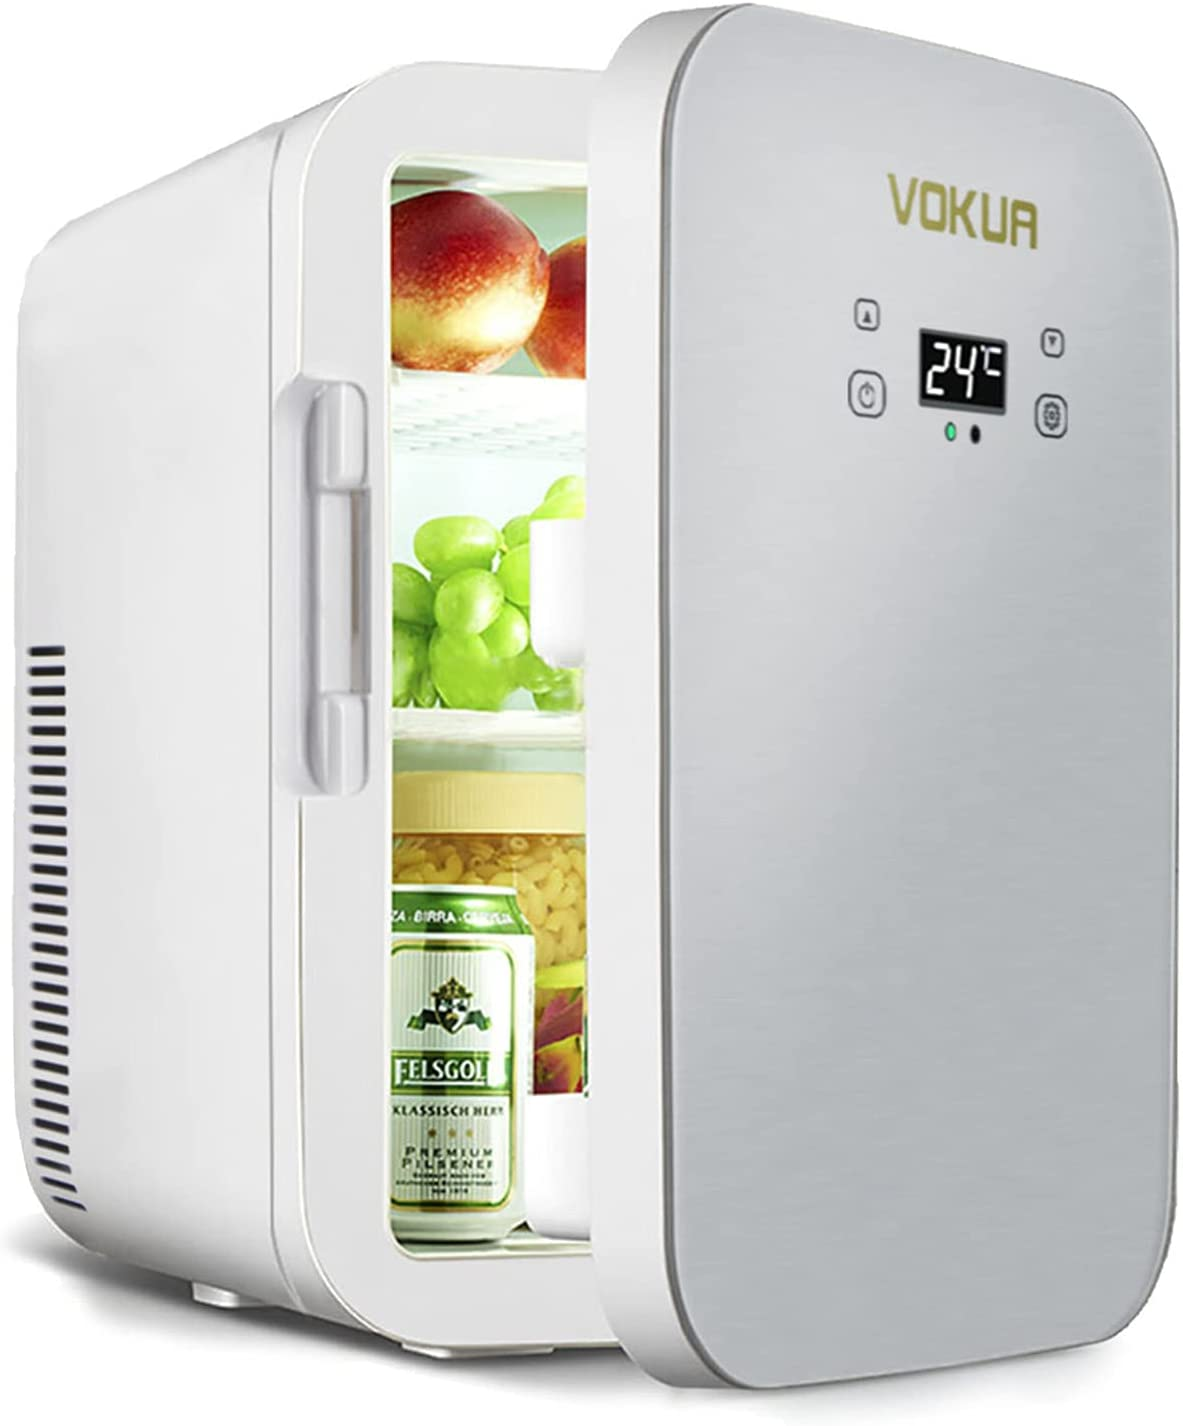 Mini Fridge, VOKUA 10 Liter Dual-Core Compact Refrigerator for Drinks, Bedroom, Skin Care, Office, Dorm, Car, Travel, Portable Small Fridge AC/DC with Digital Display and Temperature Control